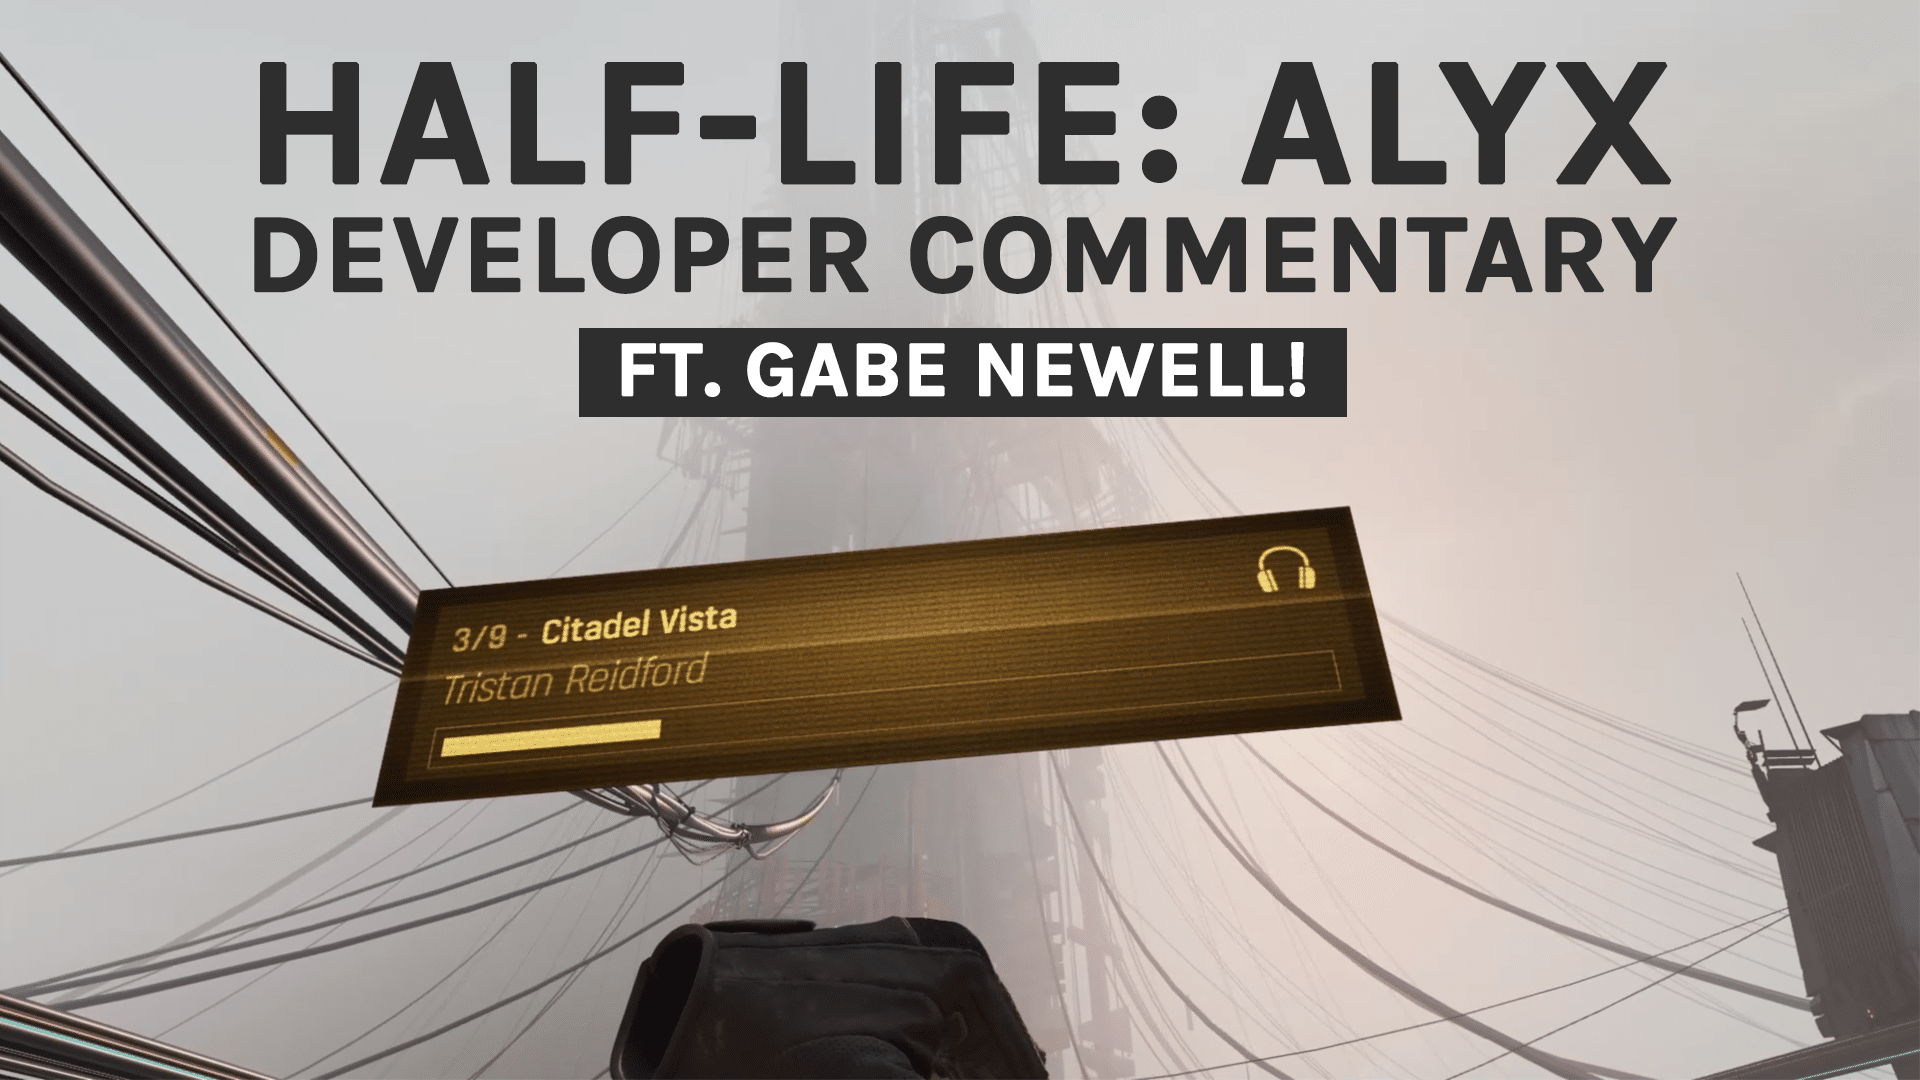 Half Life Alyx Developer Commentary